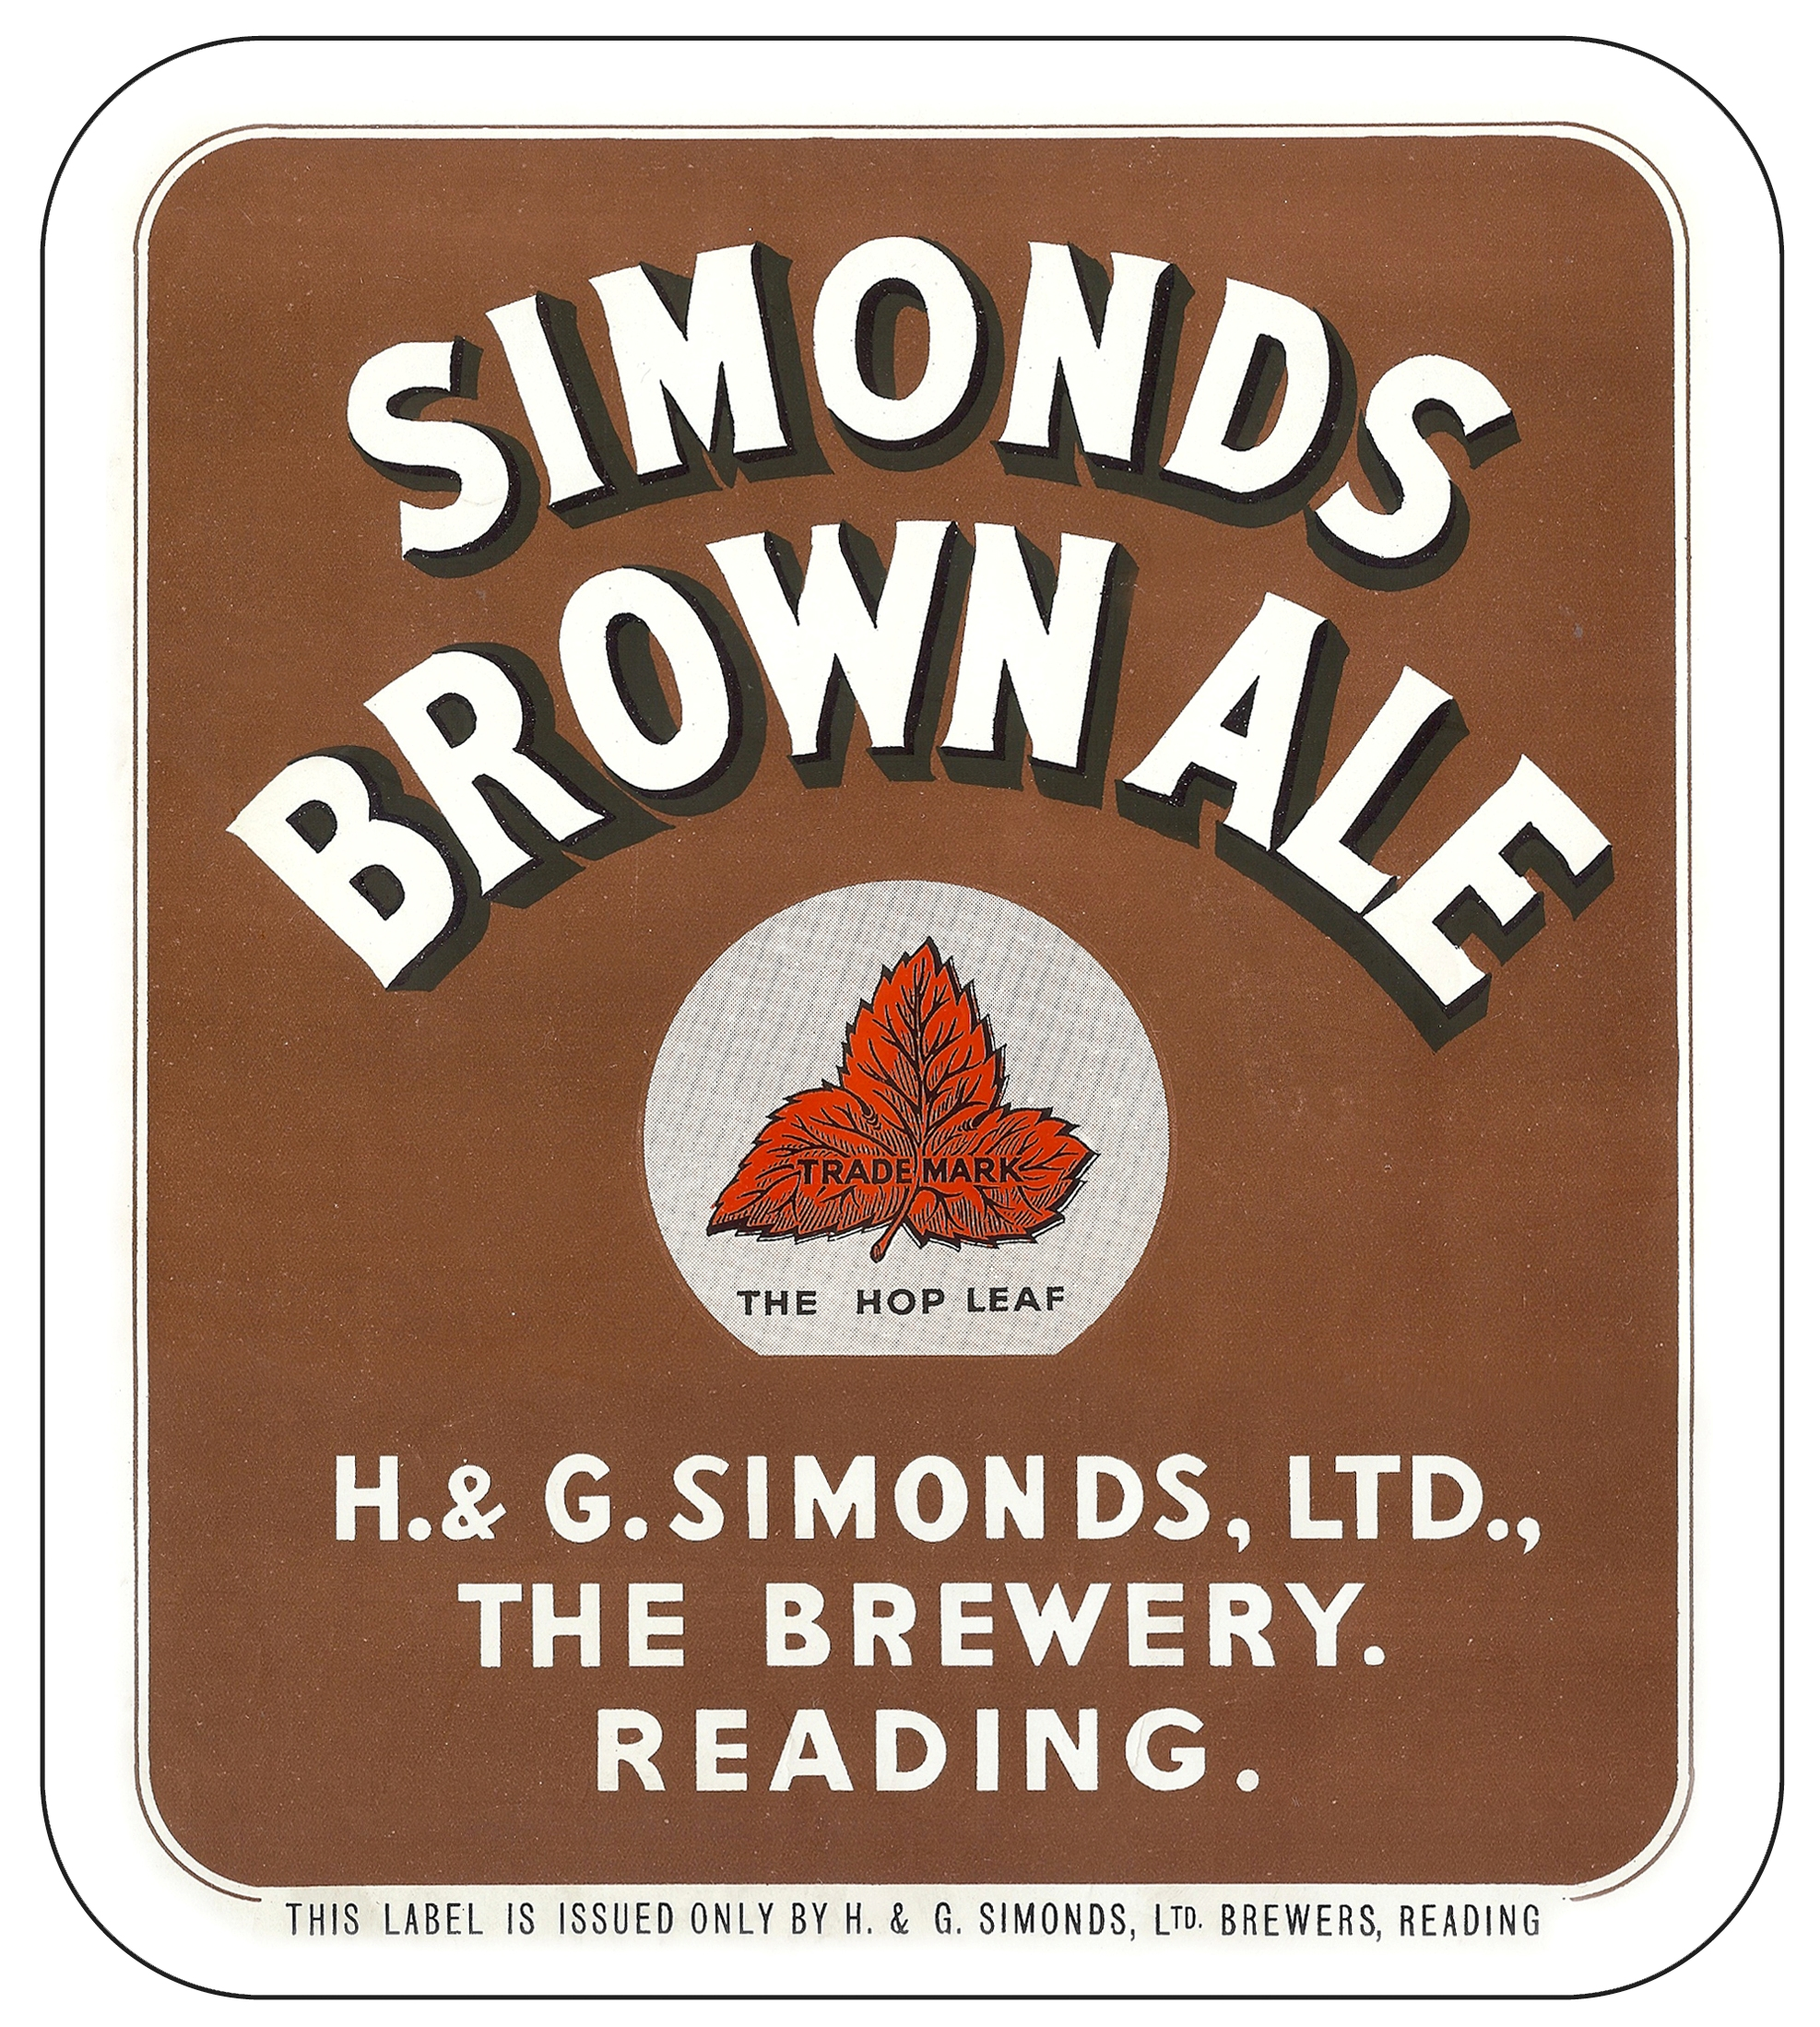 Brown Ale display label 24.2 x 27.4cms